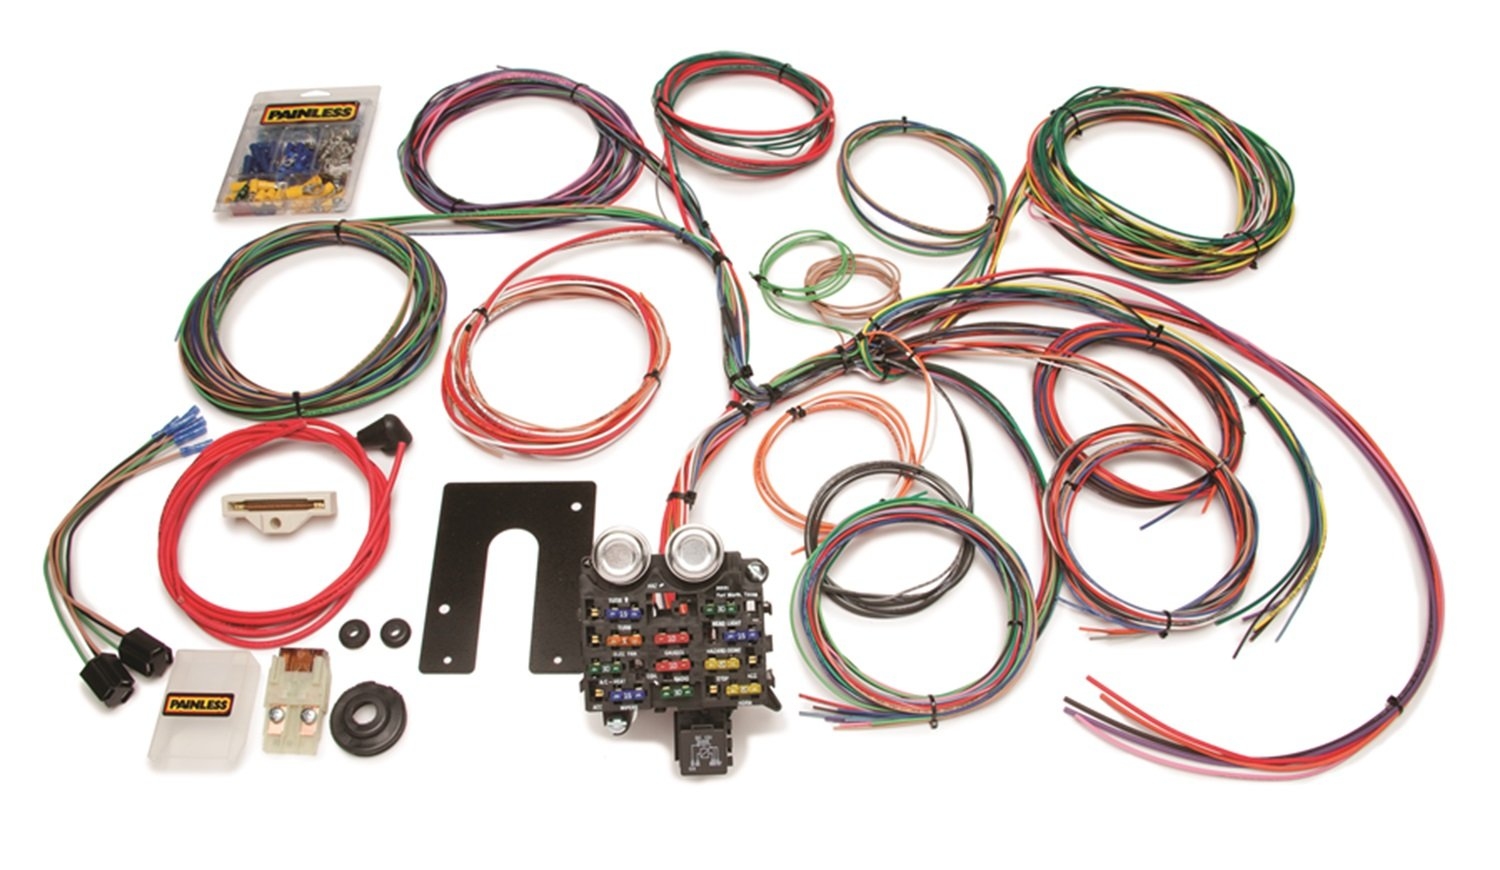 71y4s8BuPyL._SL1500_ amazon com painless wire 10105 wiring harness with firewall painless wiring harness at soozxer.org